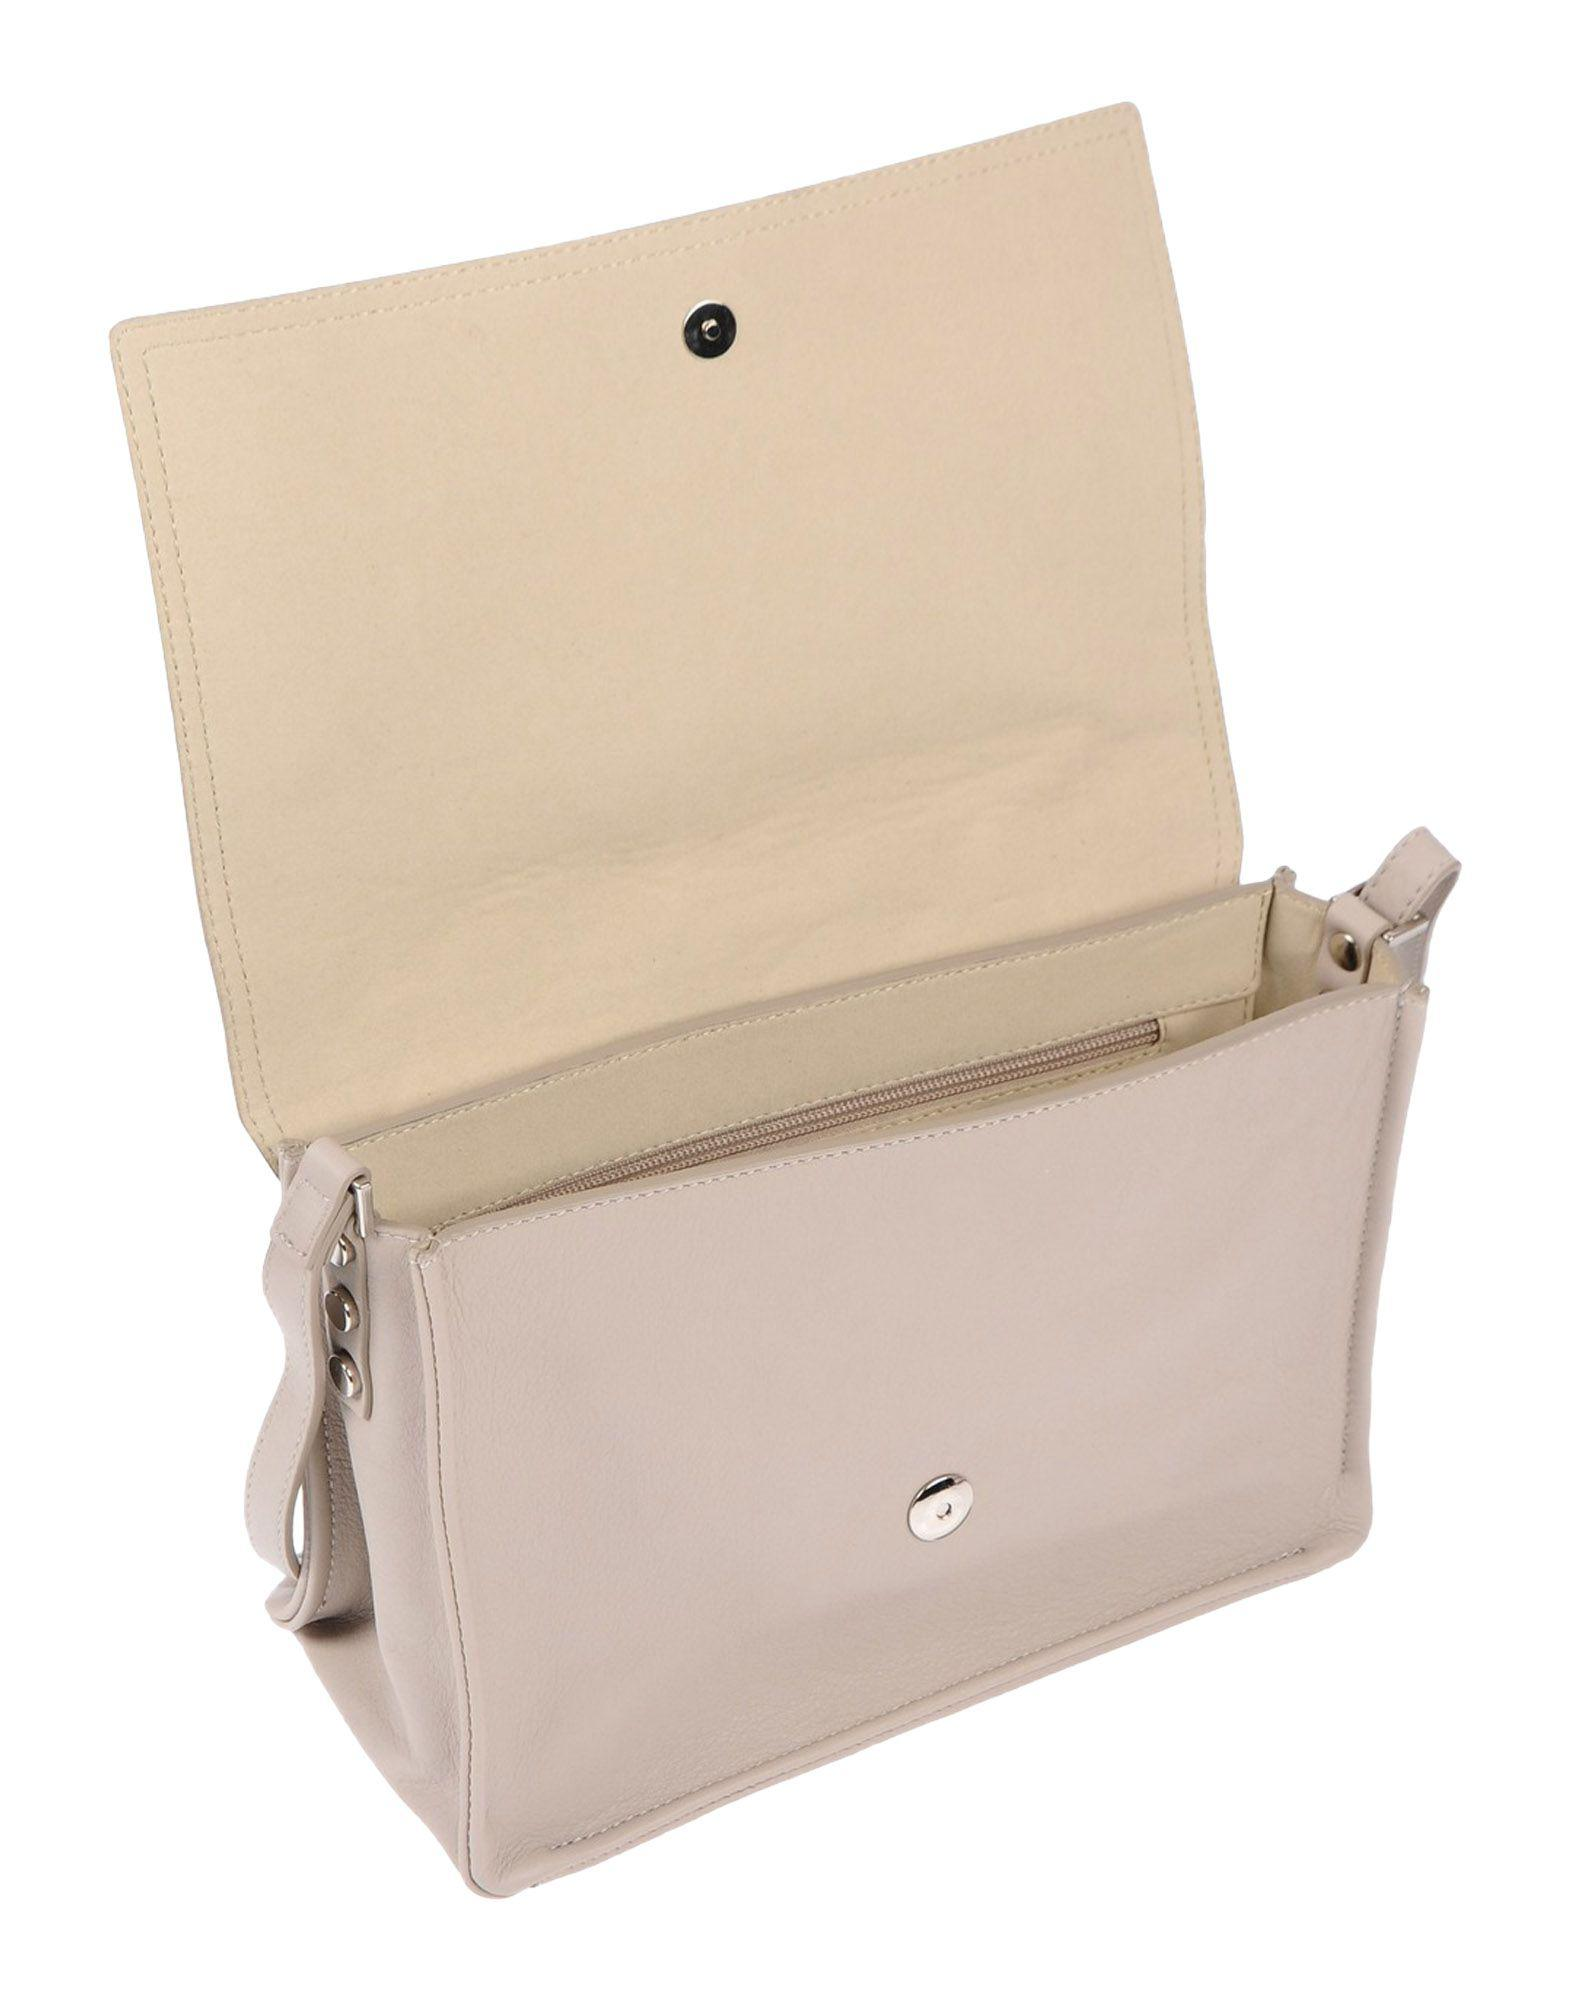 Orciani Leather Cross-body Bag in Sand (Natural)